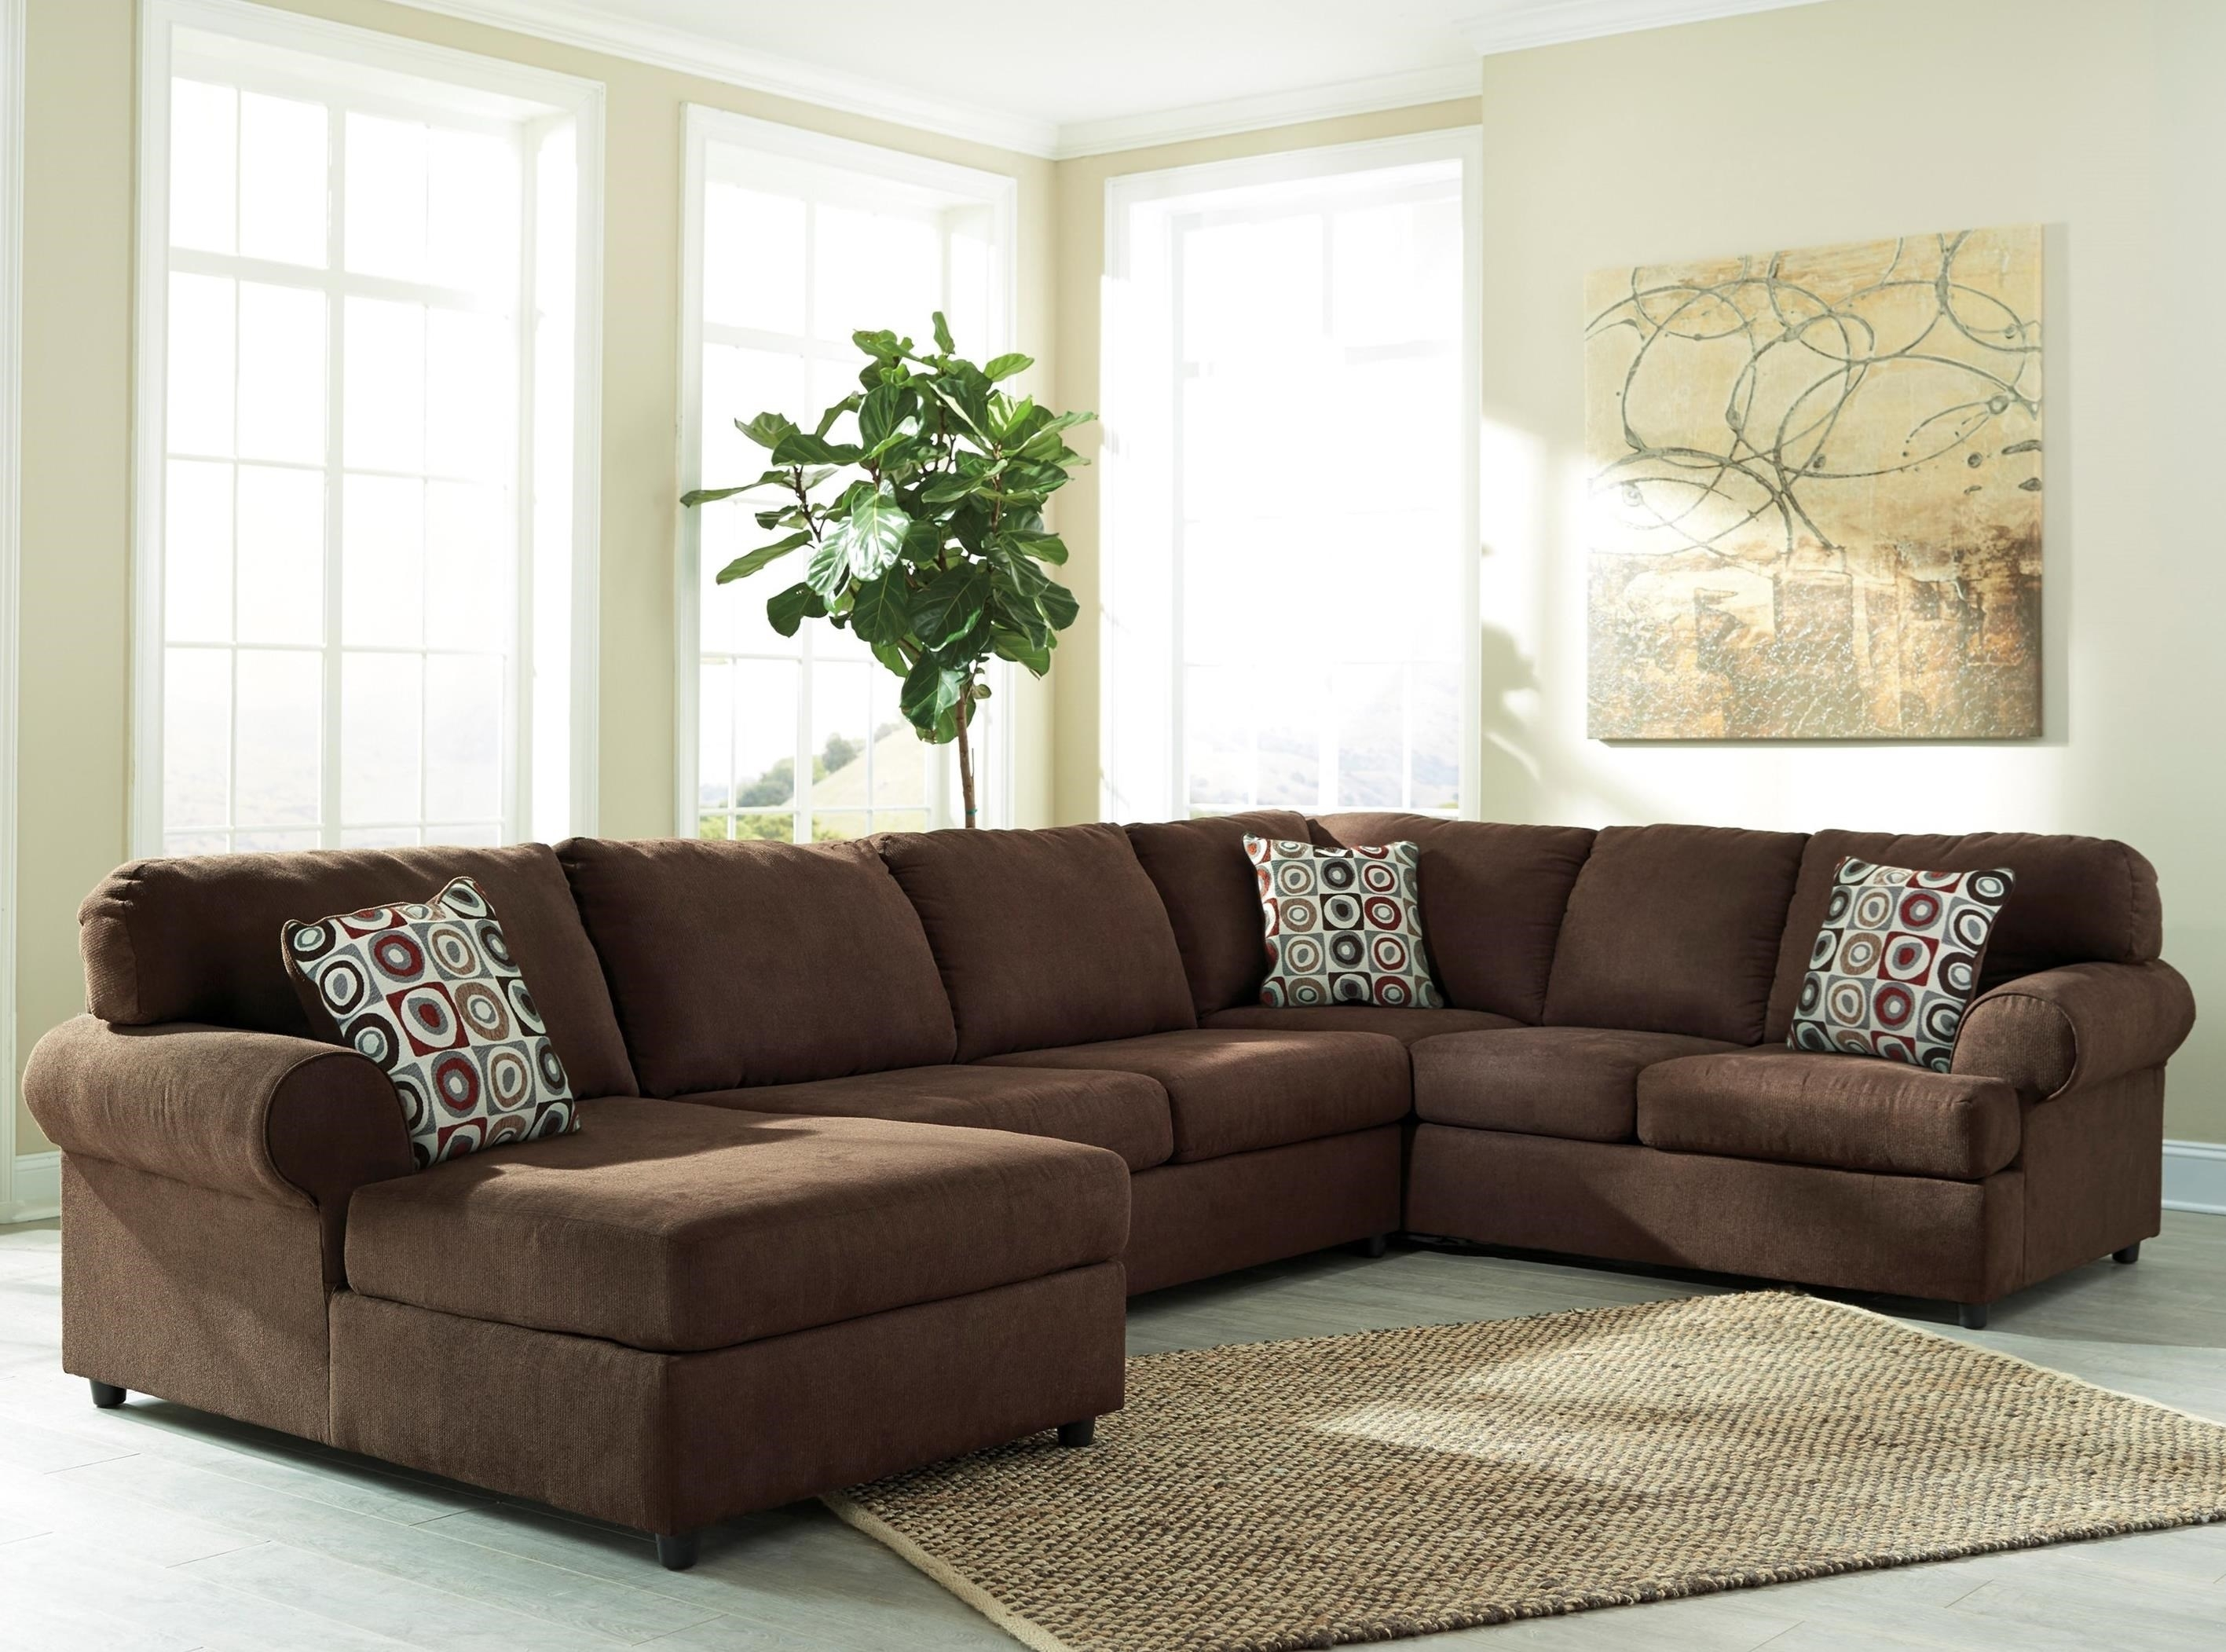 Furniture: Gorgeous King Hickory Sectional For Living Room Furniture With Regard To Hickory Nc Sectional Sofas (Image 4 of 10)